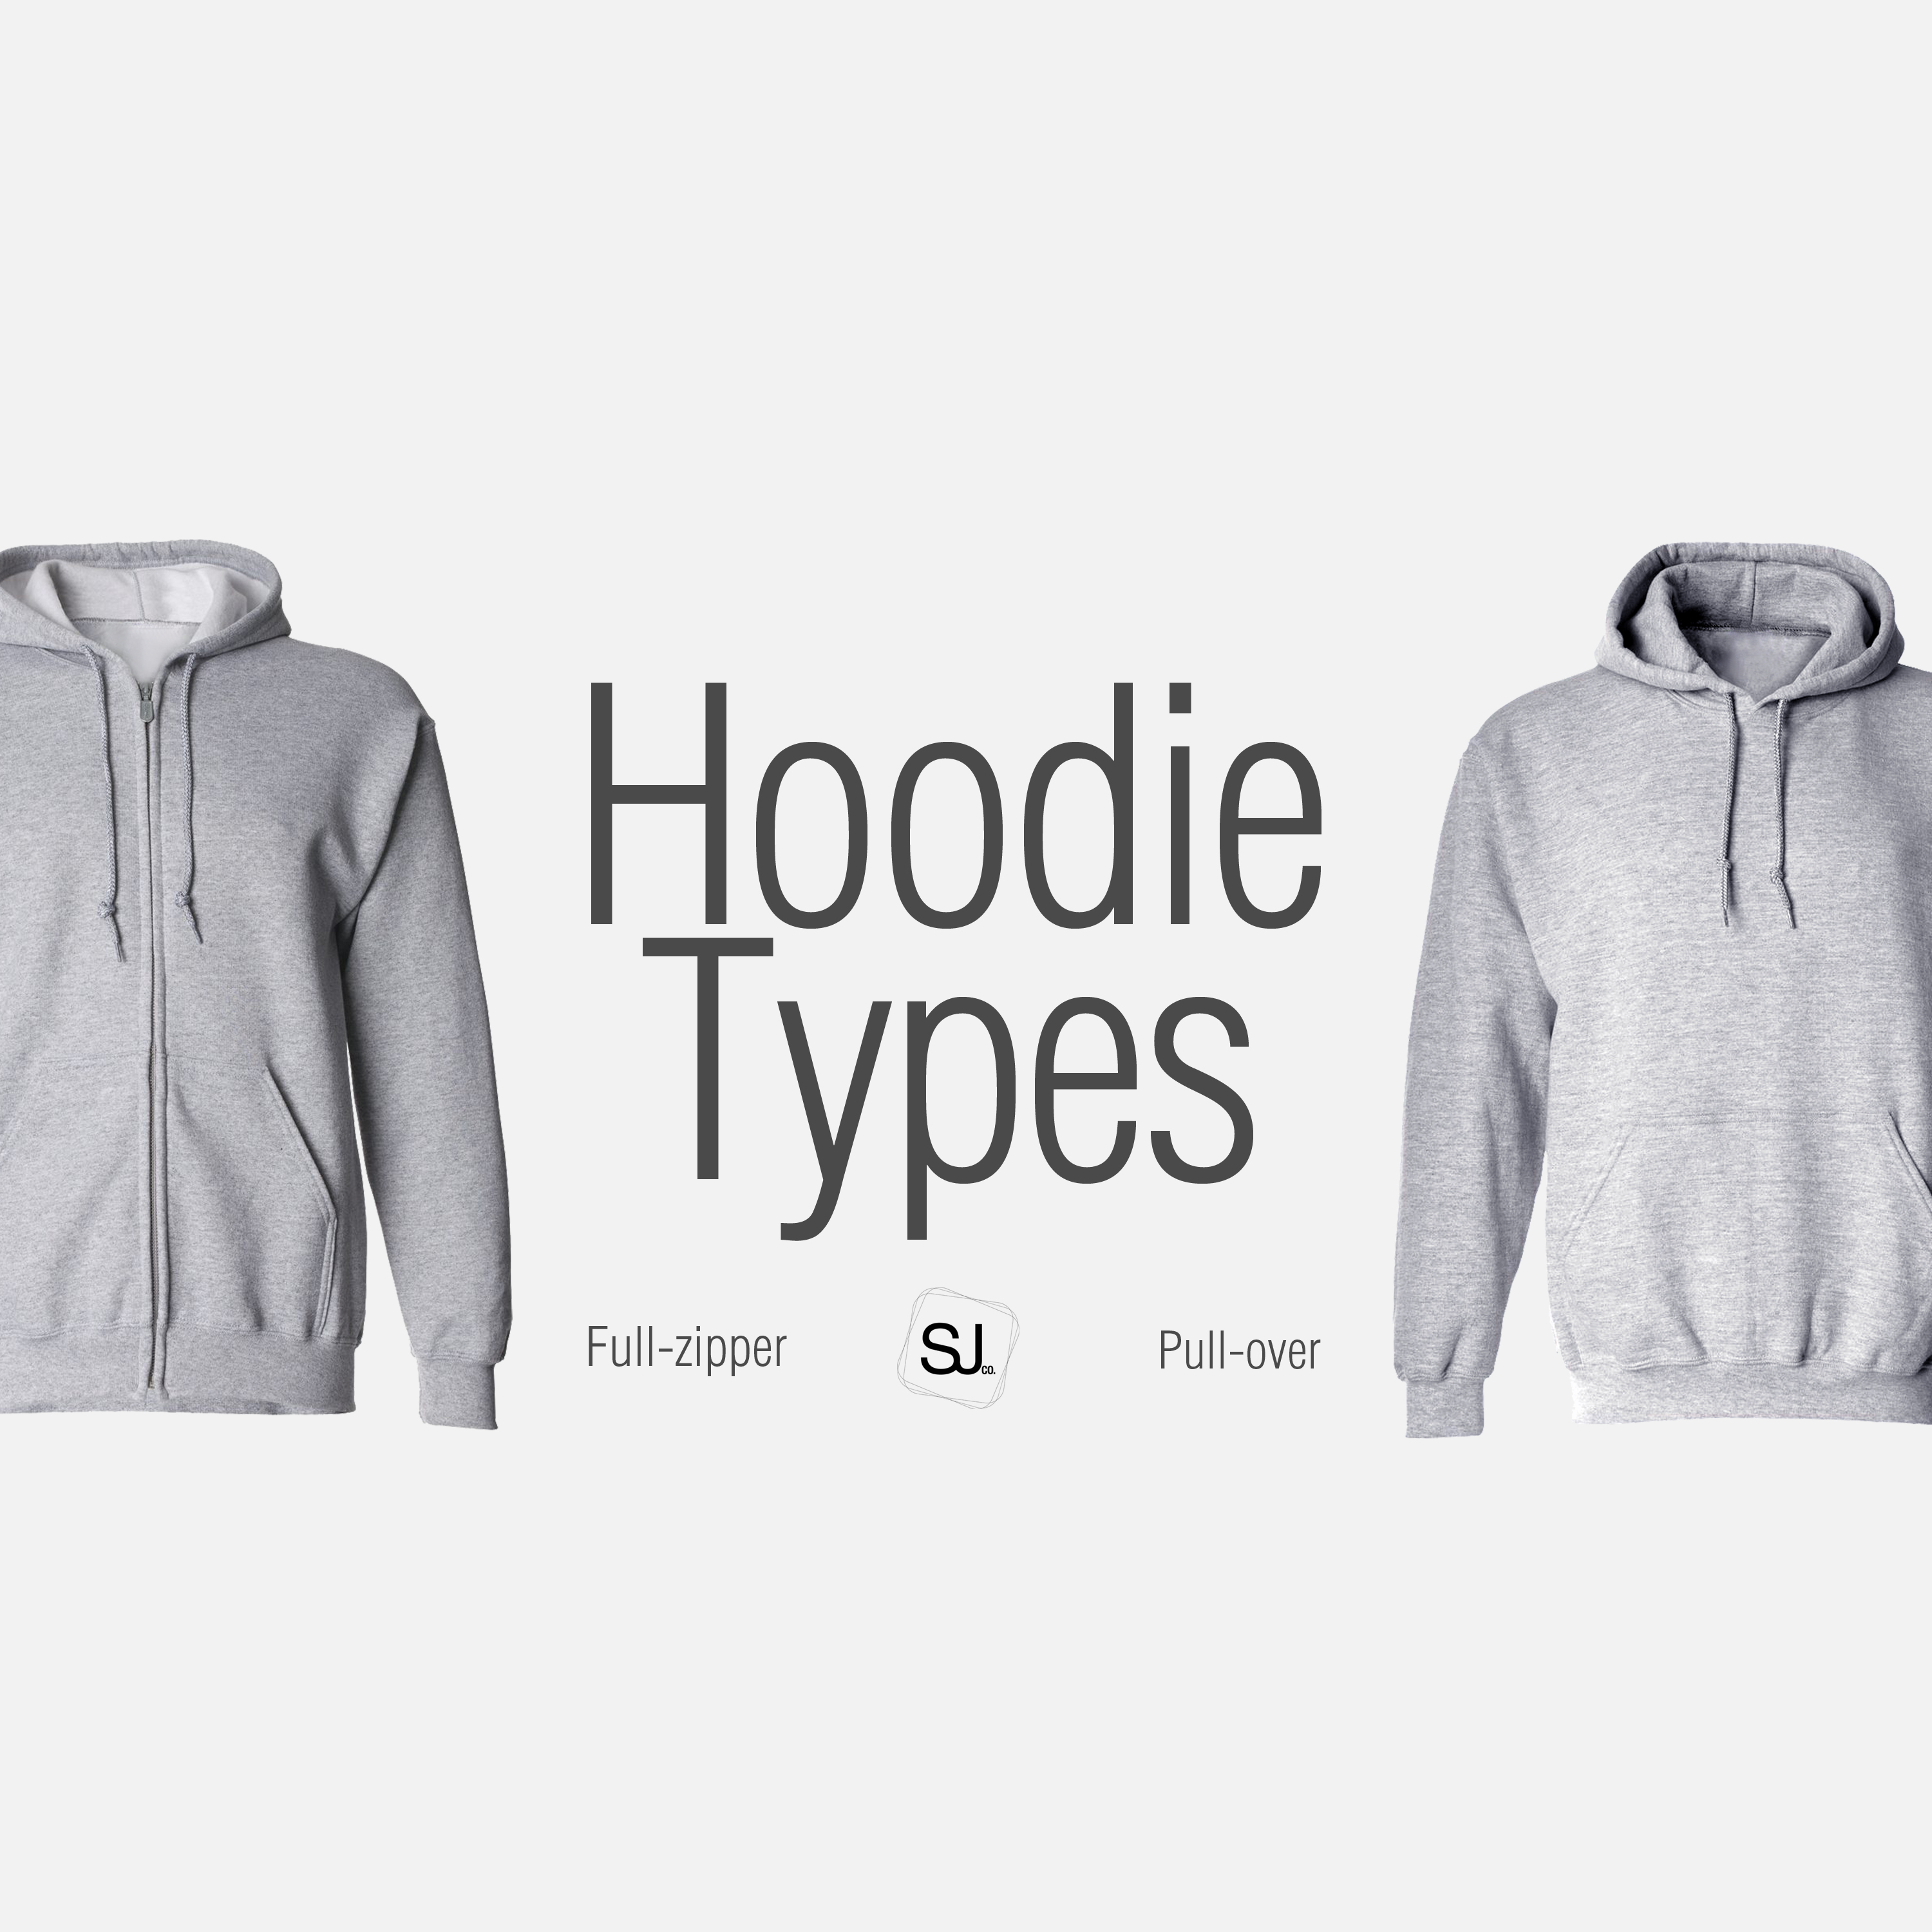 671226c548fc Hoodies jackets customize printing manila clothing co philippines pull over  full zipper jpg 3000x3000 Hoodie jackets